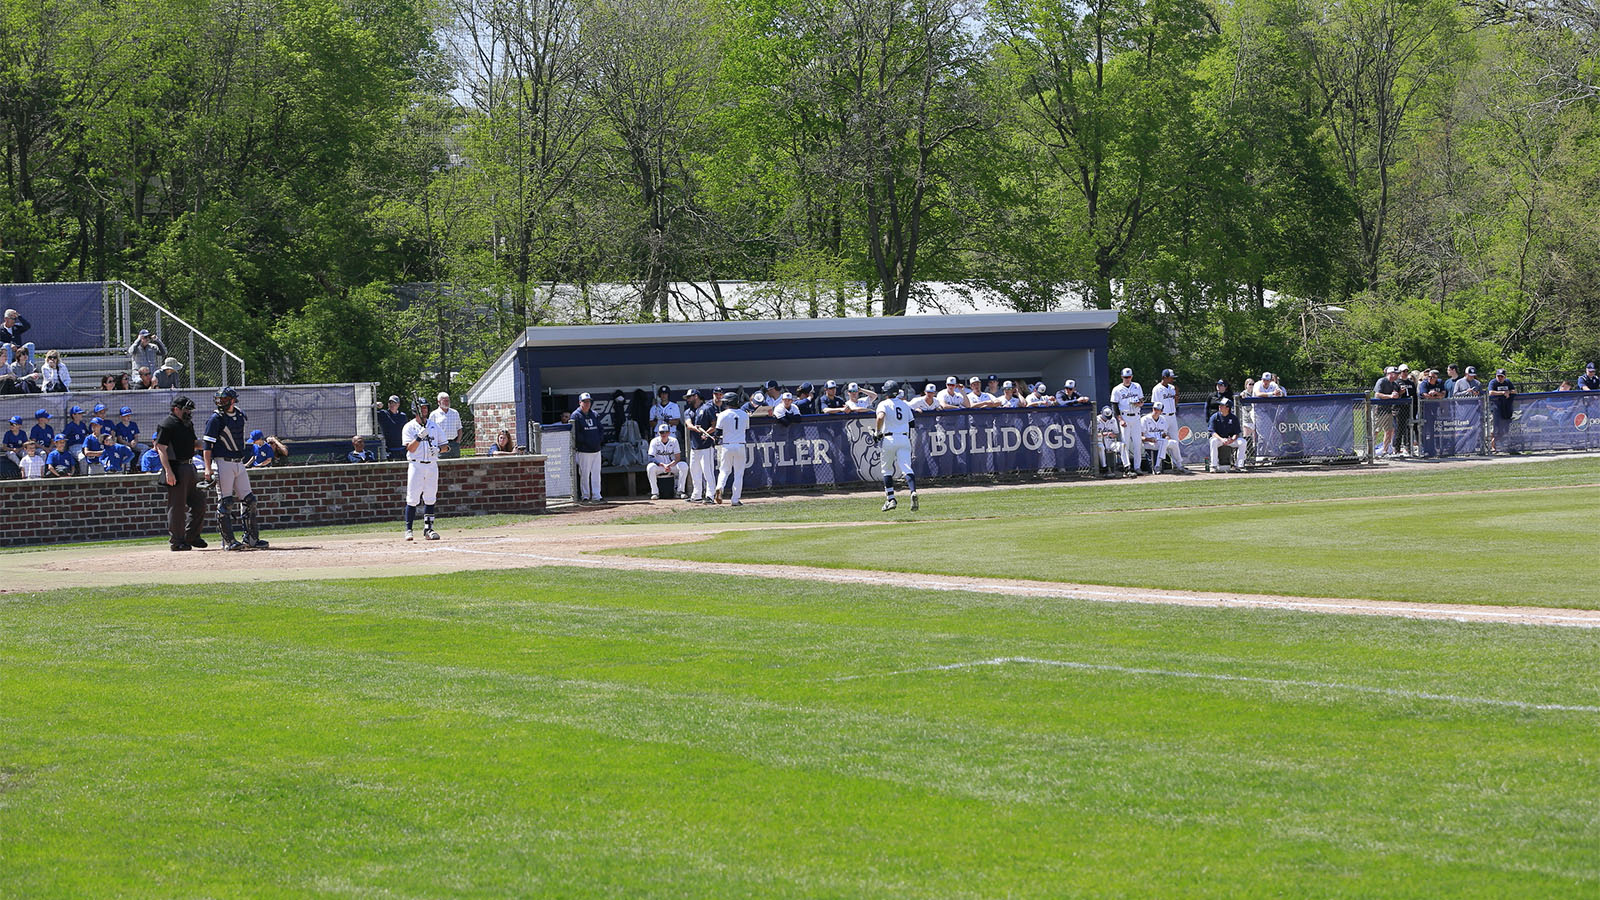 CANCELED - Baseball vs Seton Hall